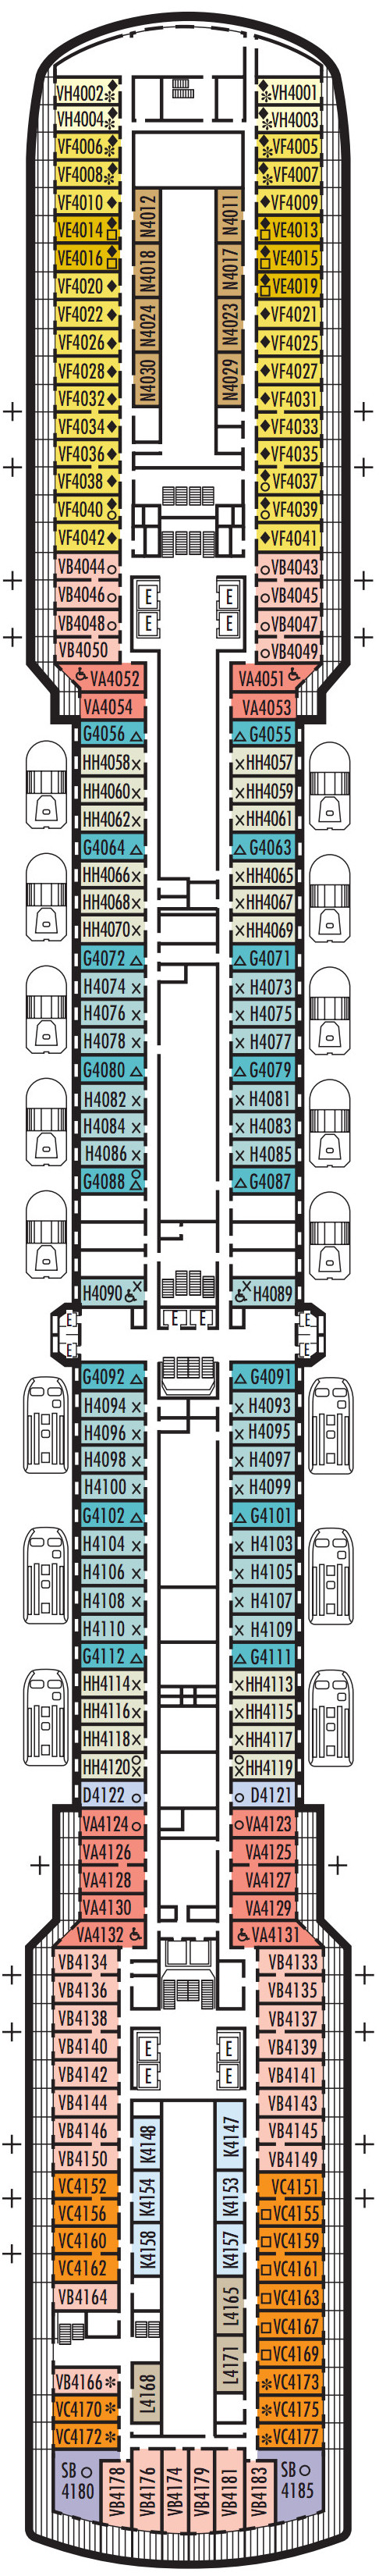 Oosterdam Deck 4 - Upper Promenade   layout